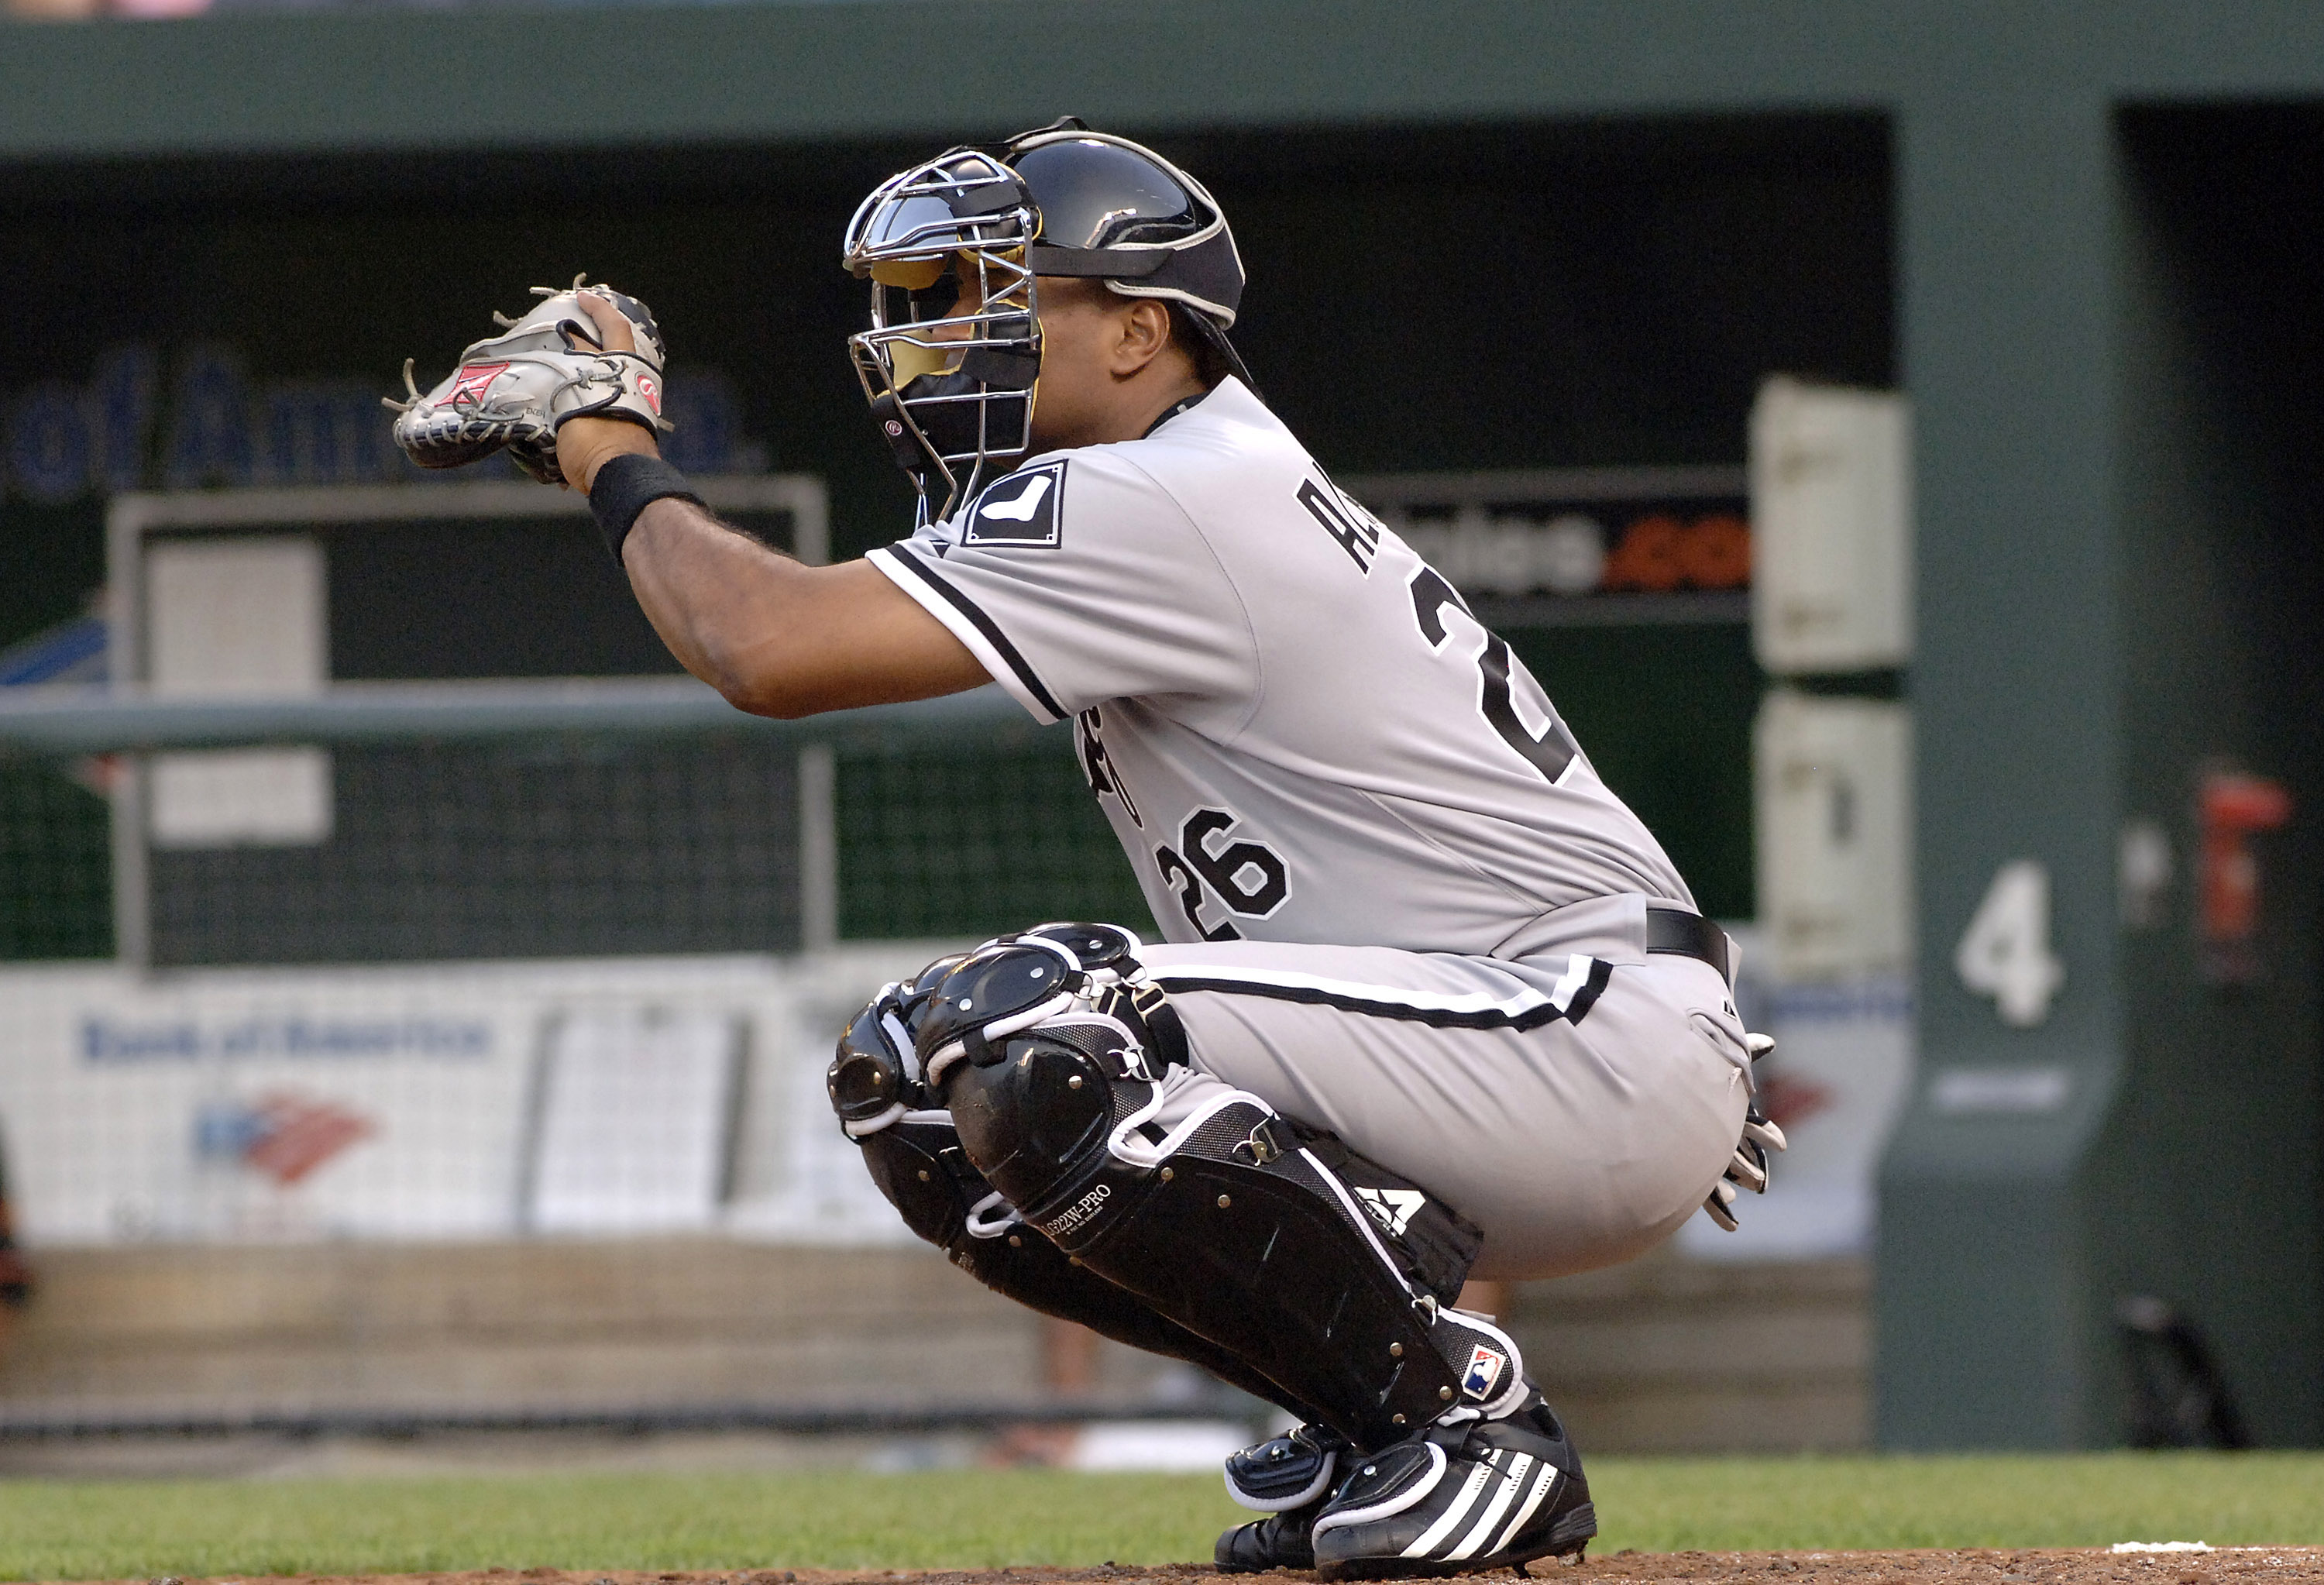 Chicago White Sox catcher Sandy Alomar  before play  against the Baltimore Orioles July 28, 2006 in Baltimore, Maryland.  The Sox won 6 - 4 on a ninth inning grand slam home run. (Photo by A. Messerschmidt/Getty Images) *** Local Caption ***